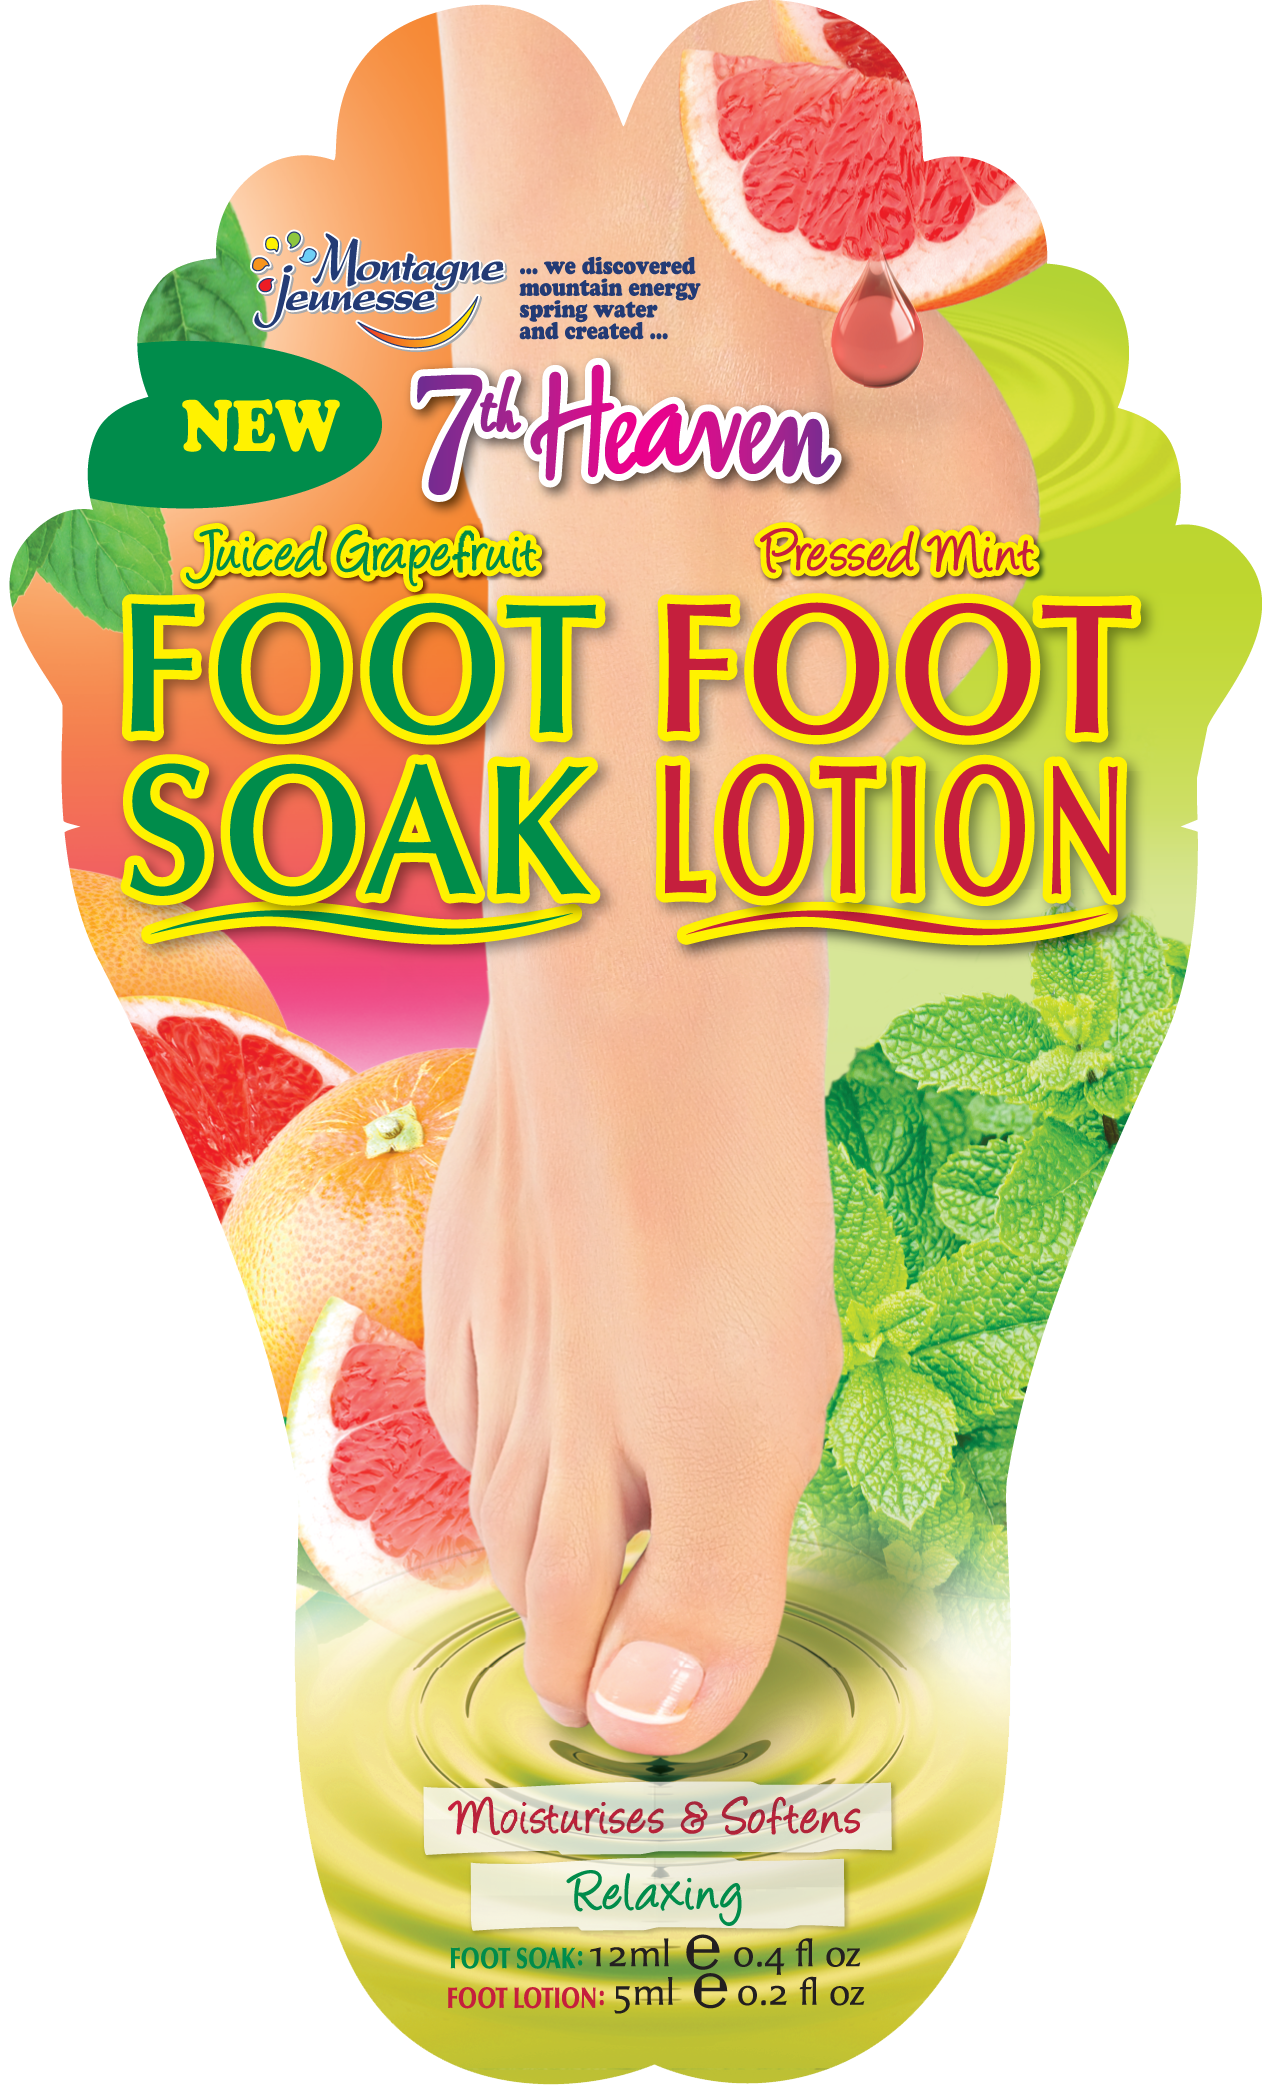 7th Heaven Juiced Grapefruit Foot Soak & Pressed Mint Foot Lotion